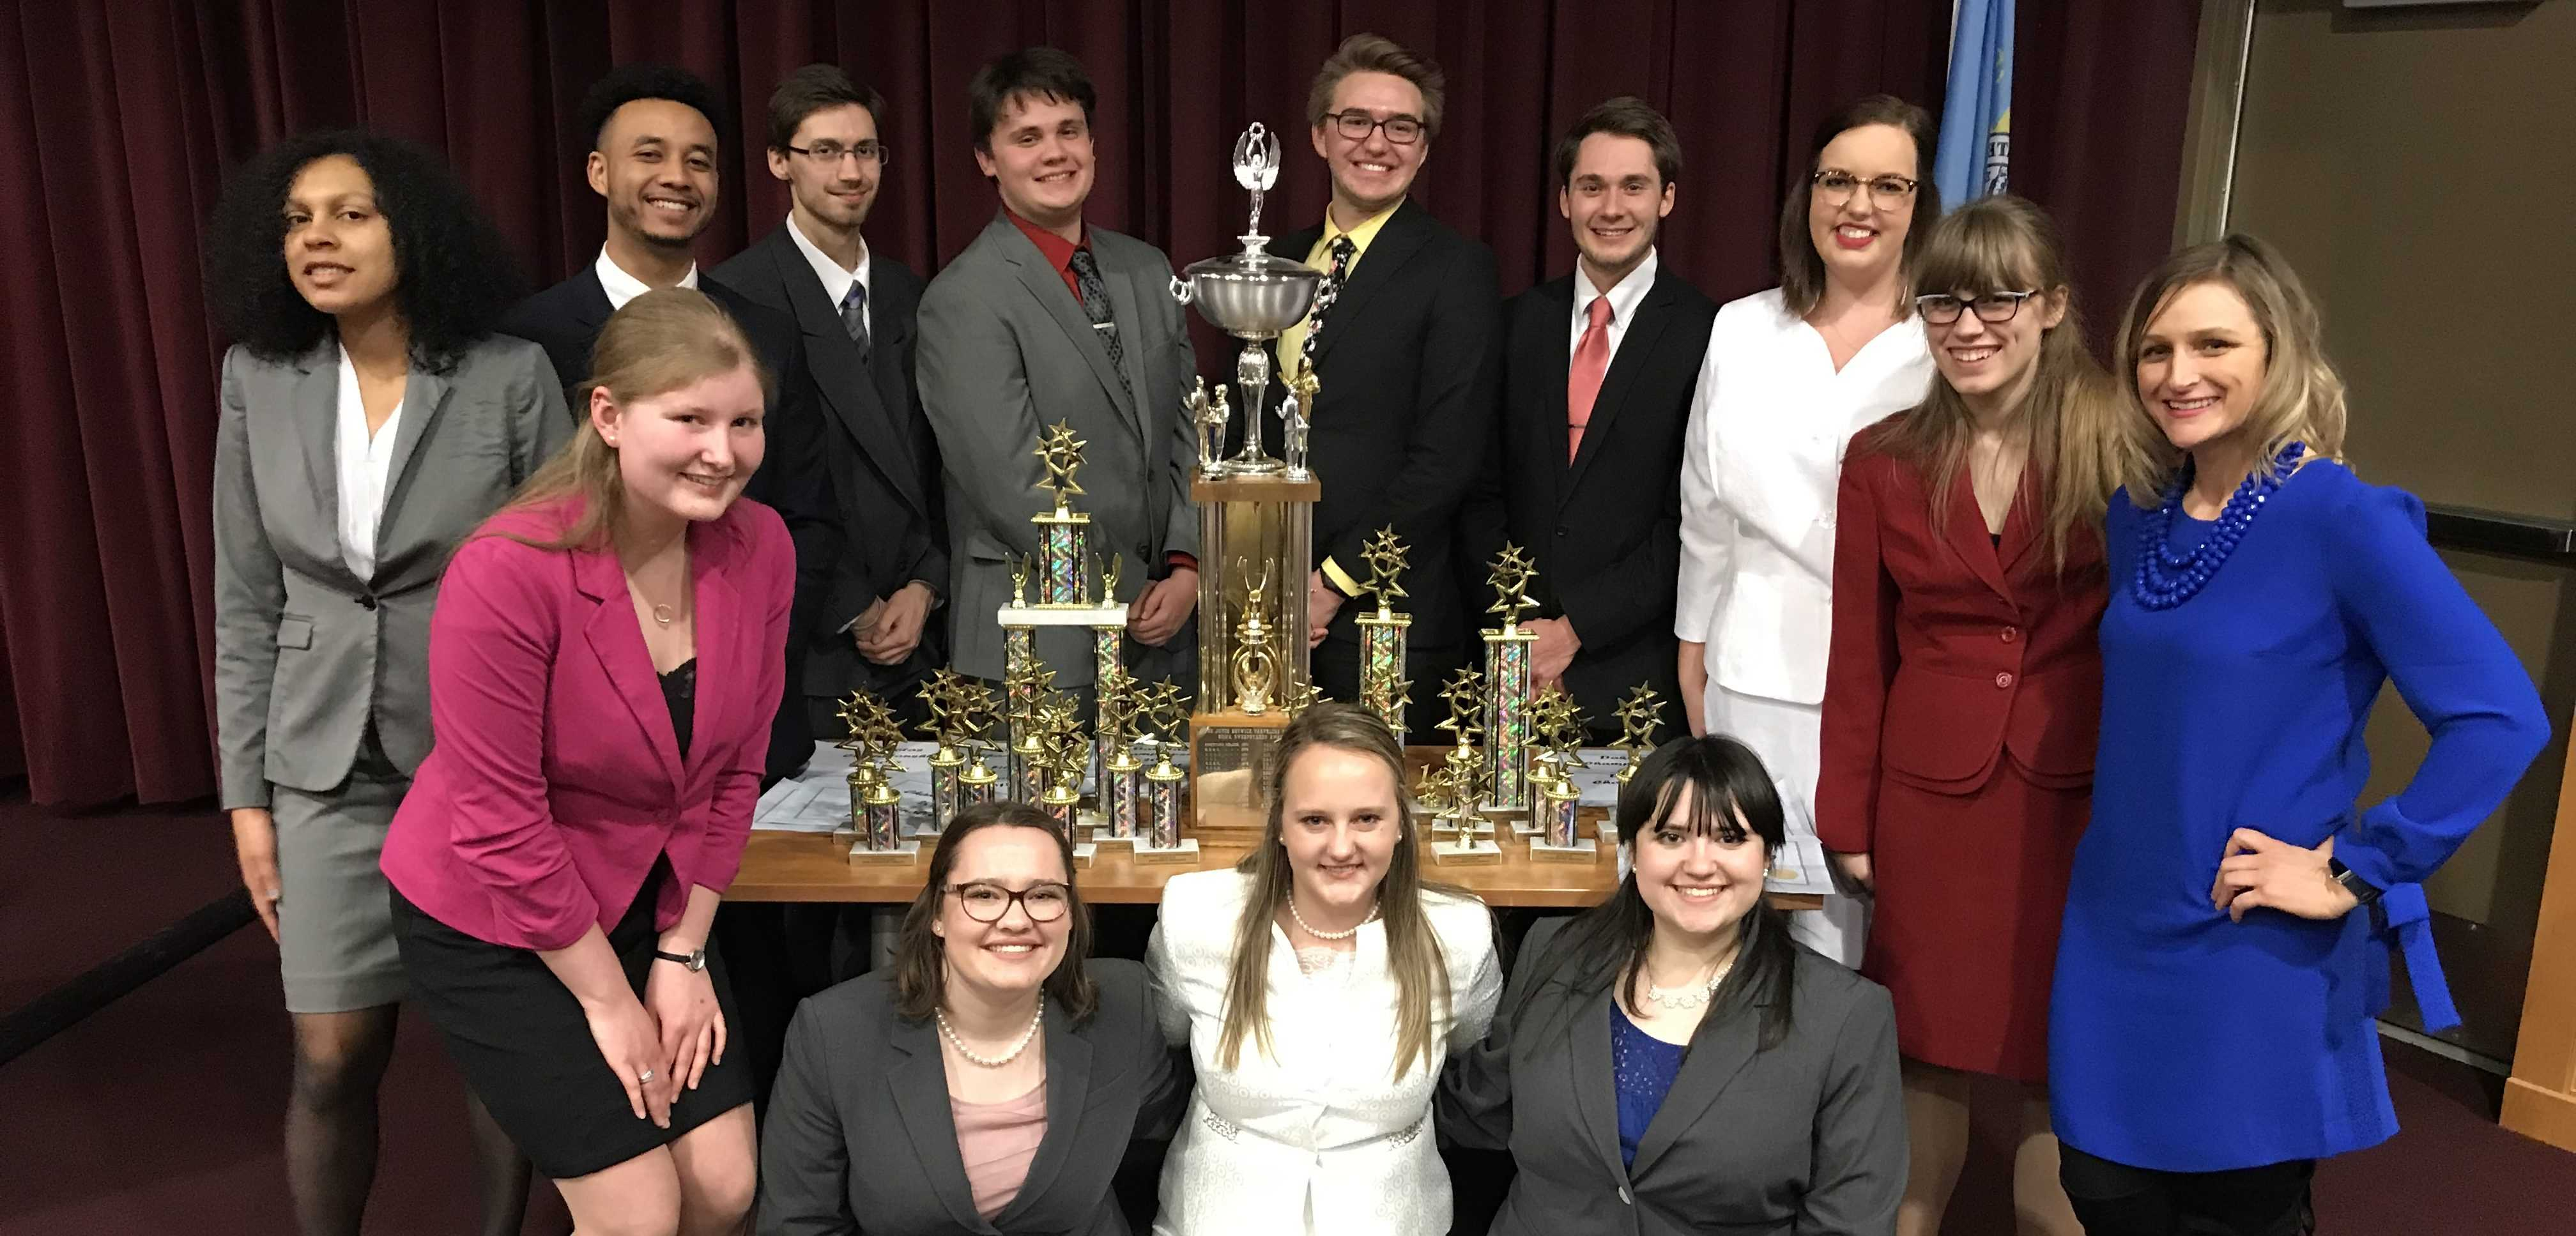 SUBMITTED The South Dakota State forensics team had a successful competition at the Dakota State tournament Feb. 17. The team competes in speech and debate events all over the Midwest.